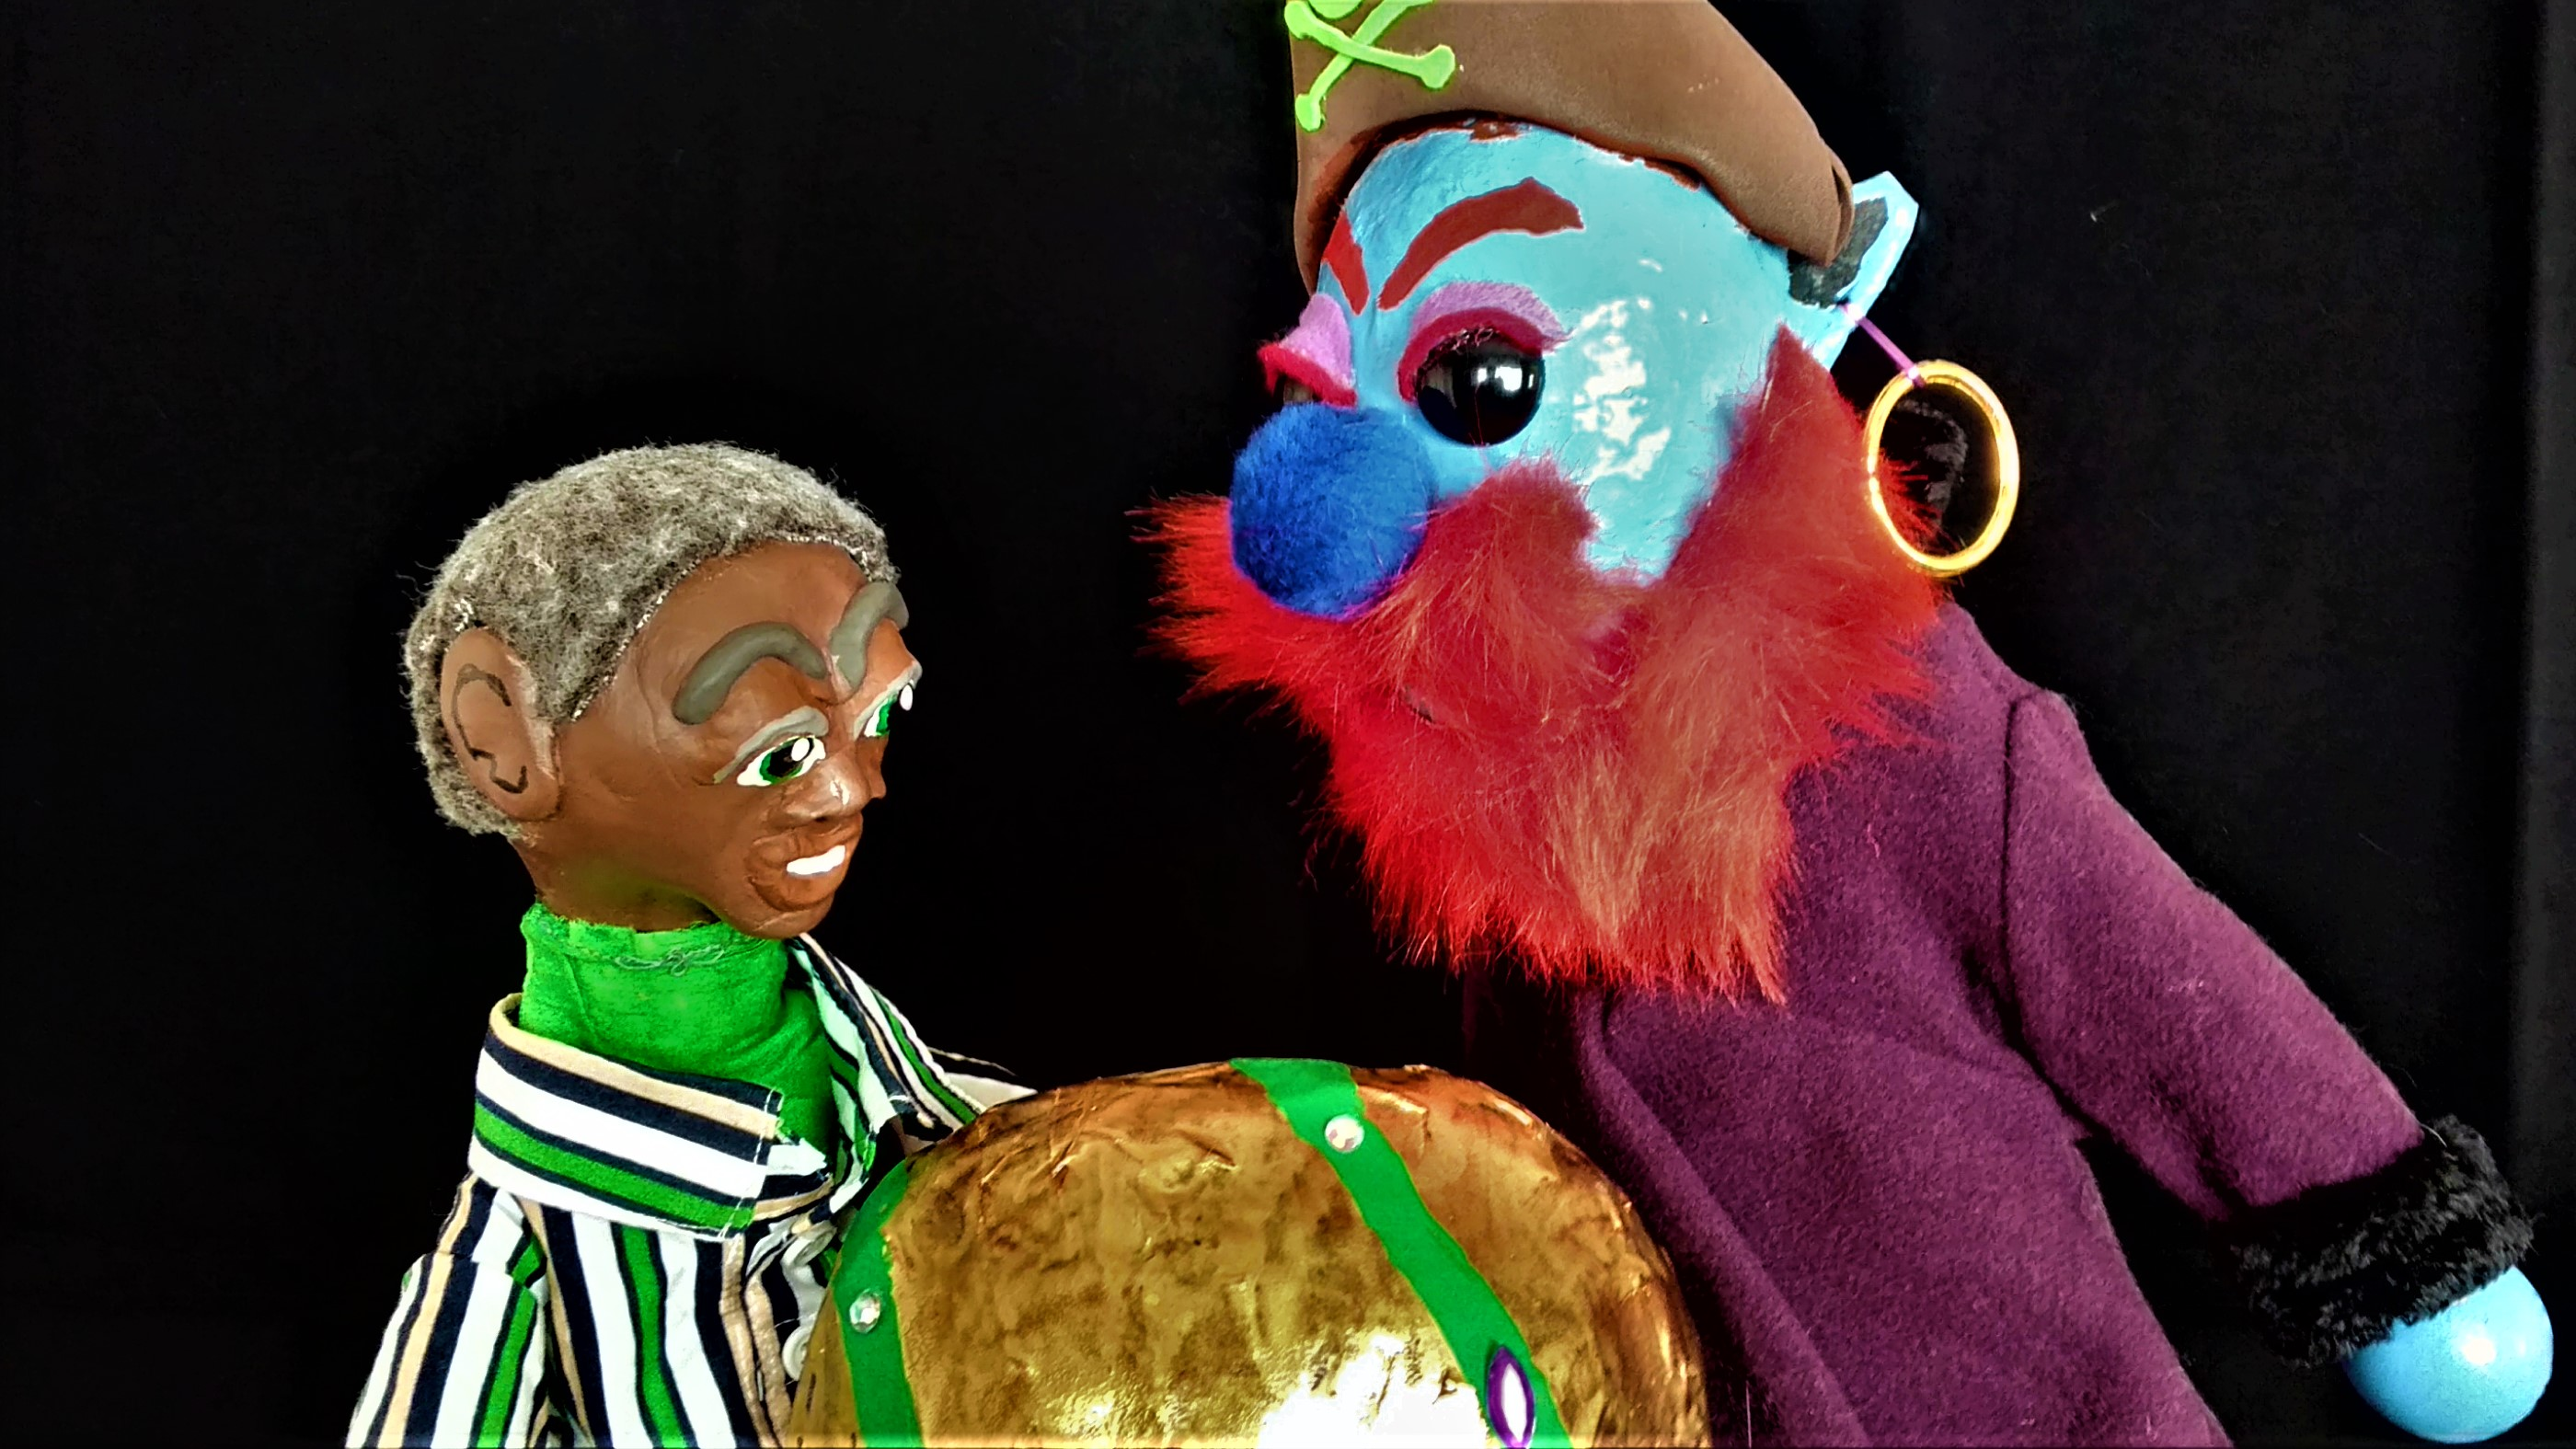 Omnipresent Puppet Theater presents Cosmic Joe and the Star Pirates